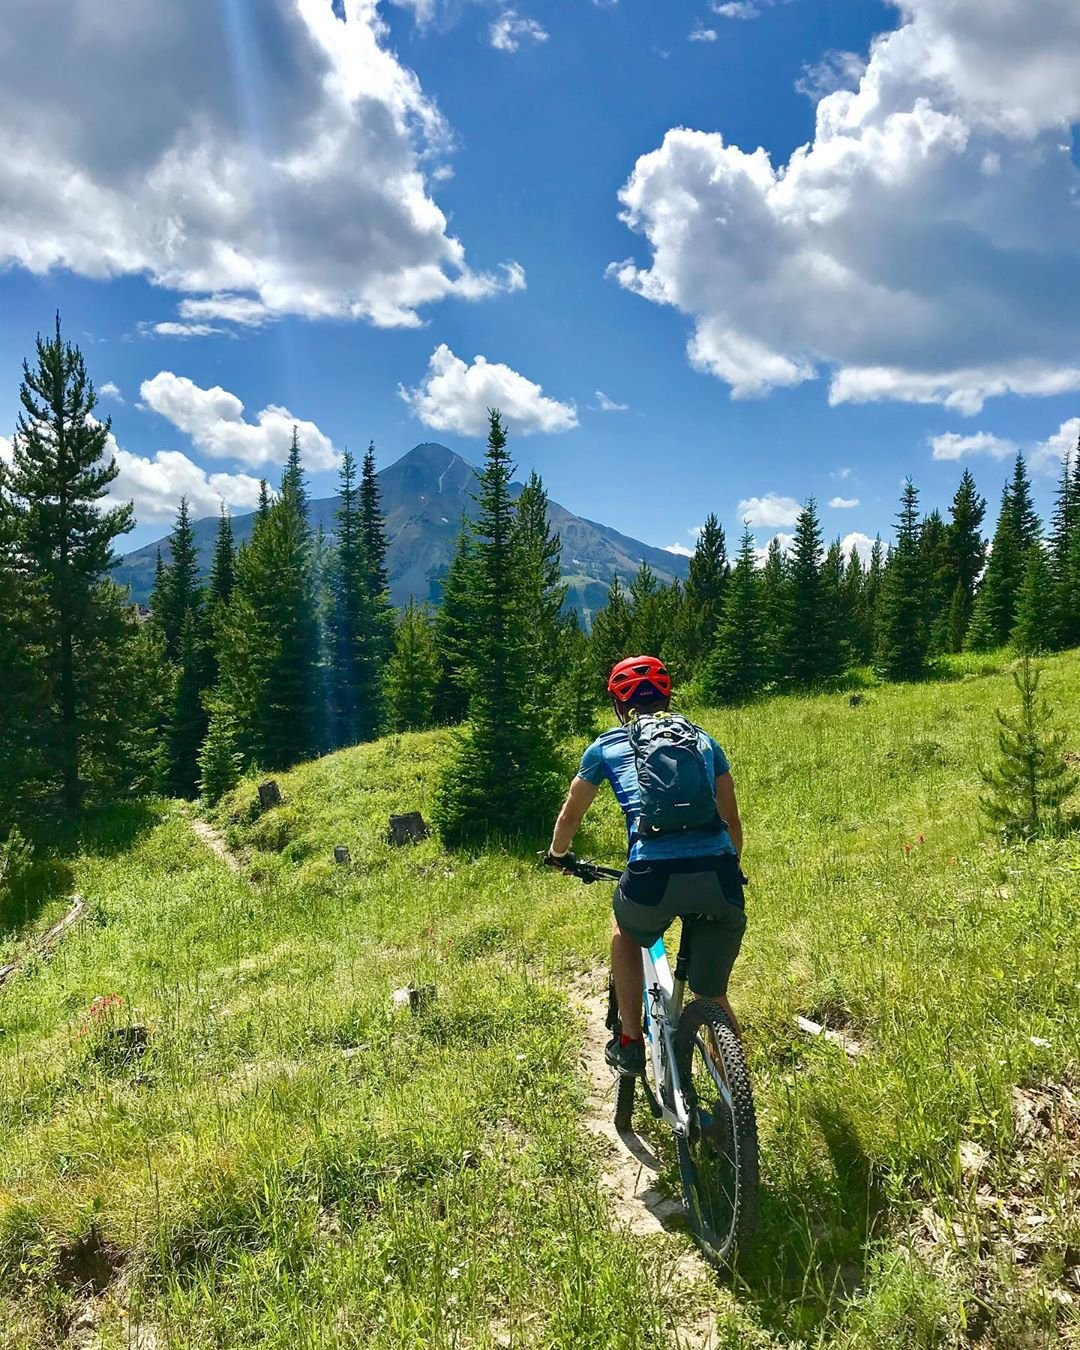 Photo by user dhirschi, caption reads Just me and my guy under one Big Sky! 👬  #bigsky #mtb #montana #summerdays #happyplace